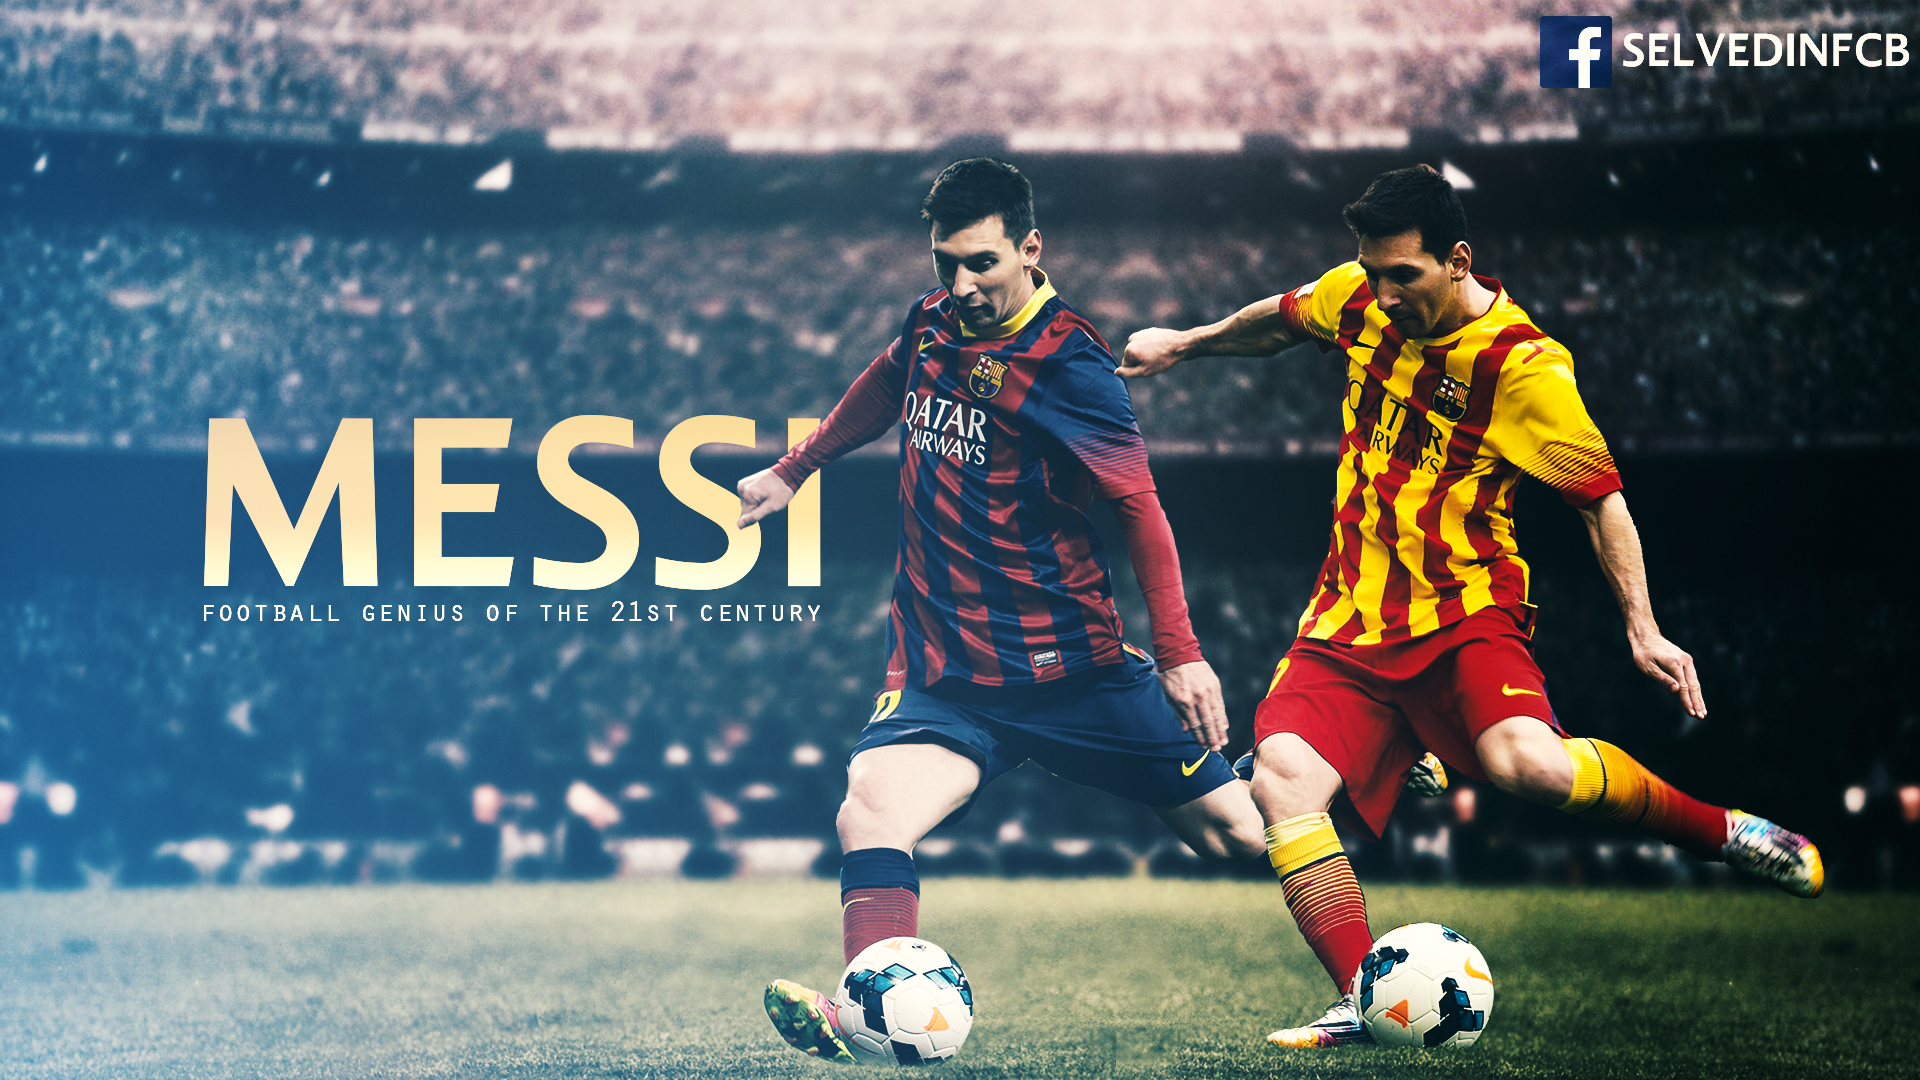 Messi Wallpaper soccer